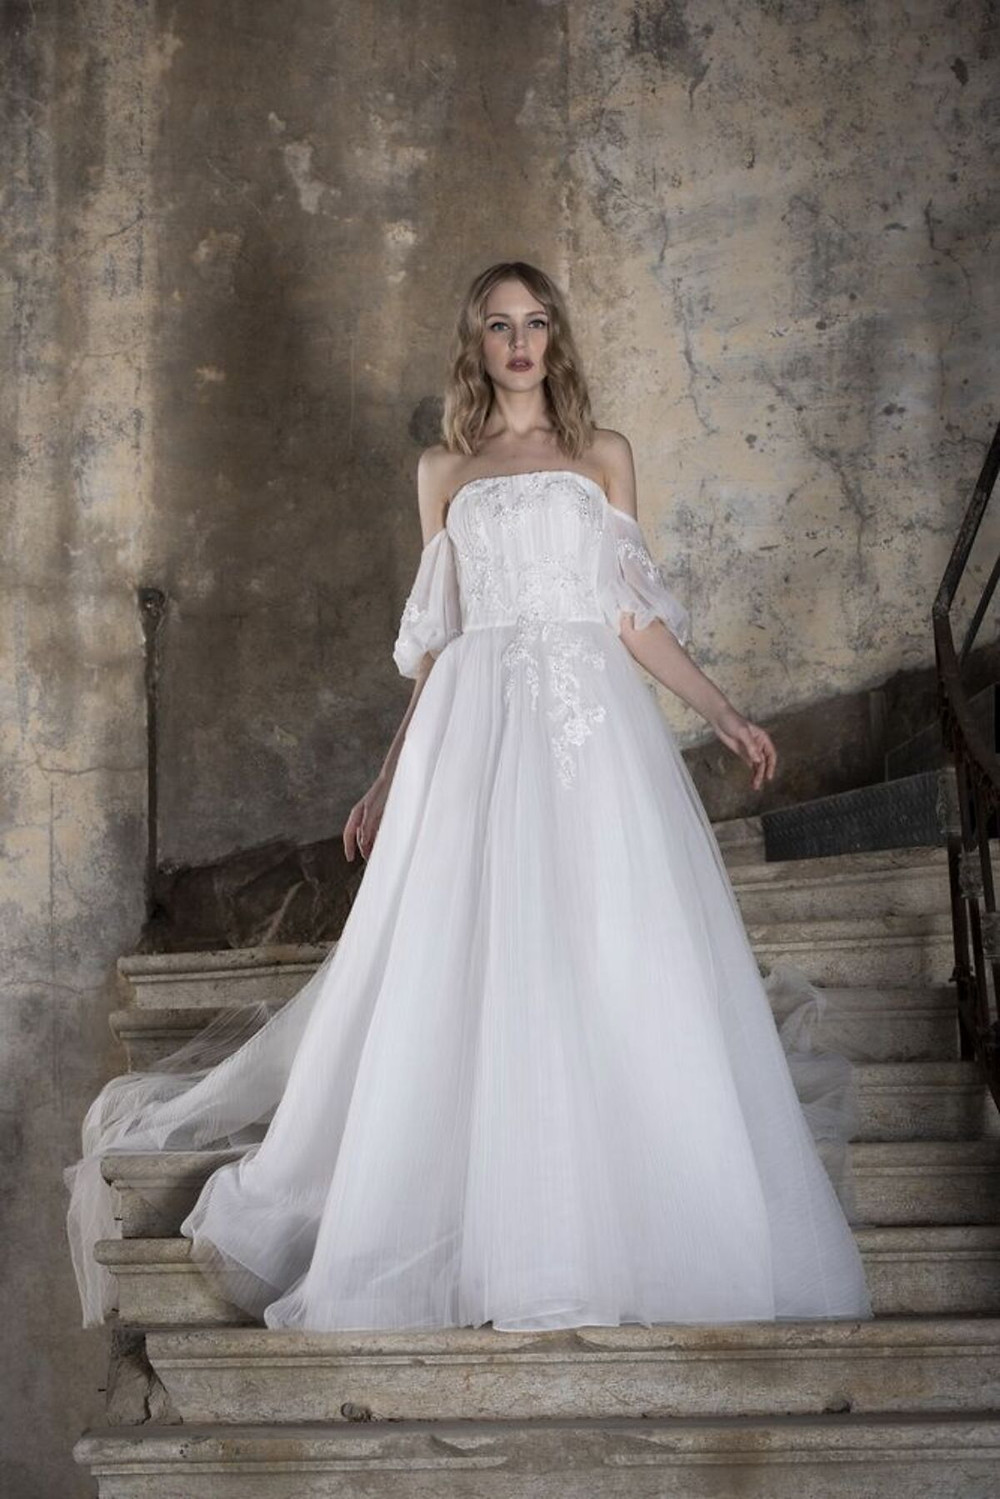 An off-shouldered wedding gown featuring sequined embroideries and a voluminous A-line tulle skirt